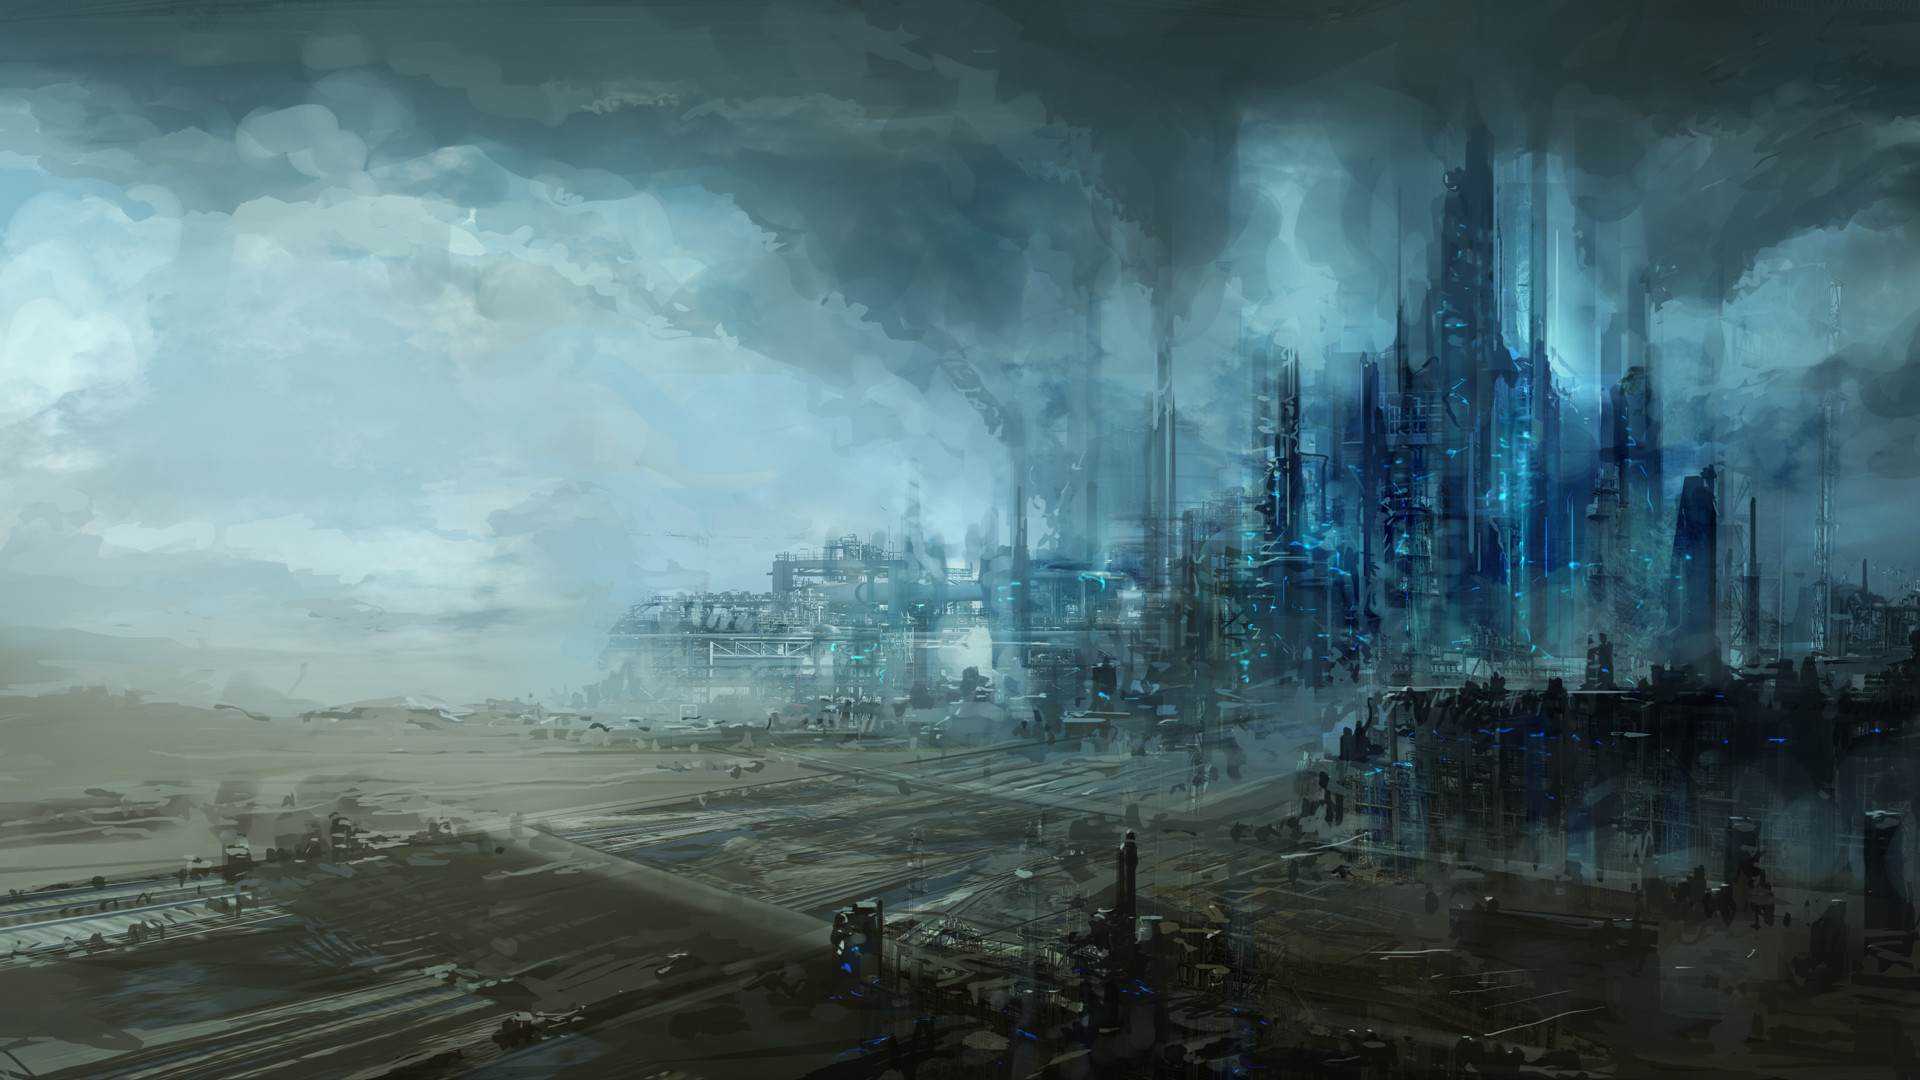 Science Fiction Wallpaper Mobile with HD Wallpaper Resolution px  842.80 KB Fantasy Other Human Organic